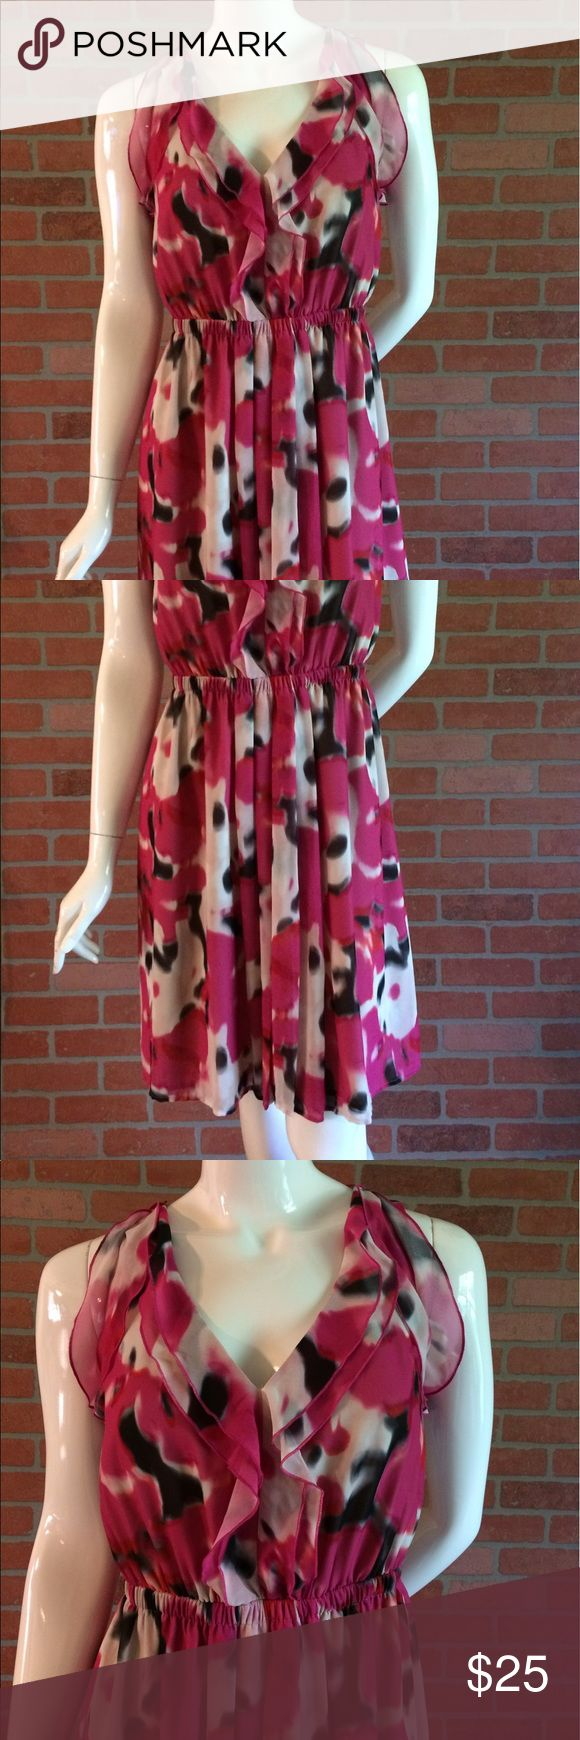 Sleeveless Loft Dress Pink Cream Black EUC Beautiful sleeveless dress by Ann Taylor LOFT. Size 0. Elastic waist. Colors are Pink Cream & Black. Has 2 large ruffles at the neck line. Chest is 17 inches from armpit to armpit. Waist is 12.5 inches unstretched.  Length is 37.5 inches from top of shoulder to bottom of dress. Shoulders are 11 inches across.  Very light and flowy. Fully lined.  Shell is 100% polyester lining is 100% polyester.  Machine wash cold tumble dry low. Ann Taylor LOFT…